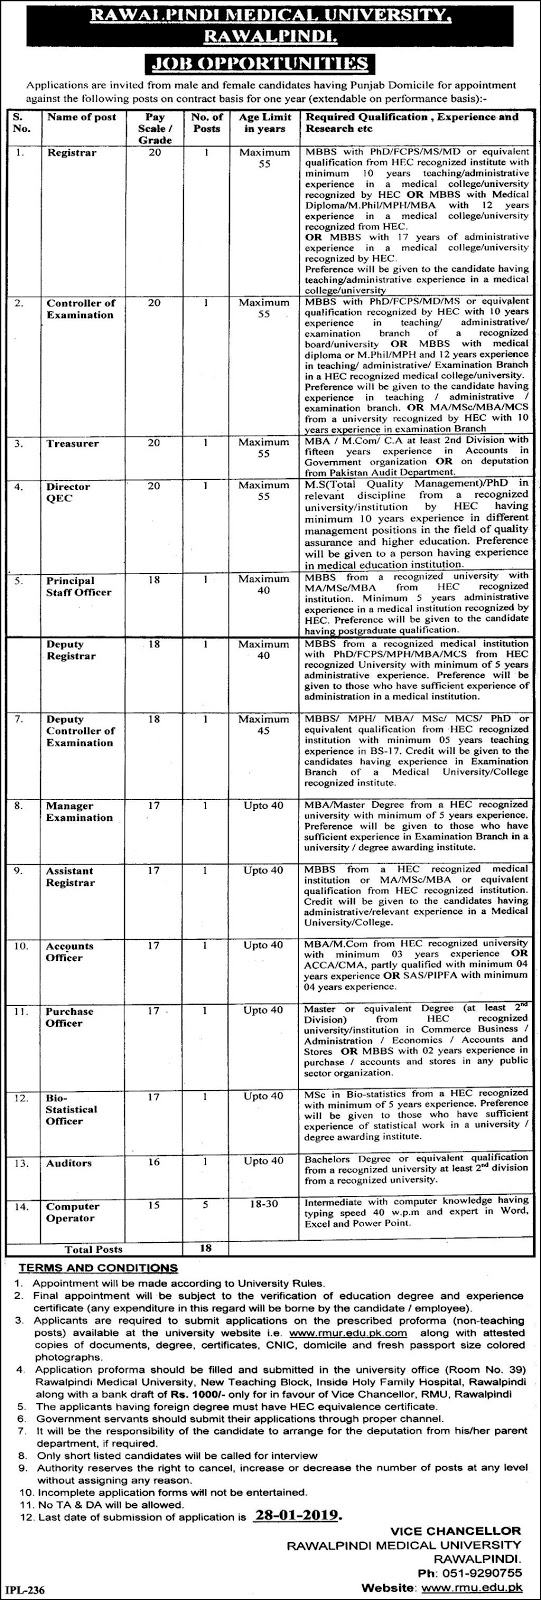 Advertisement for Rawalpindi Medical University Jobs